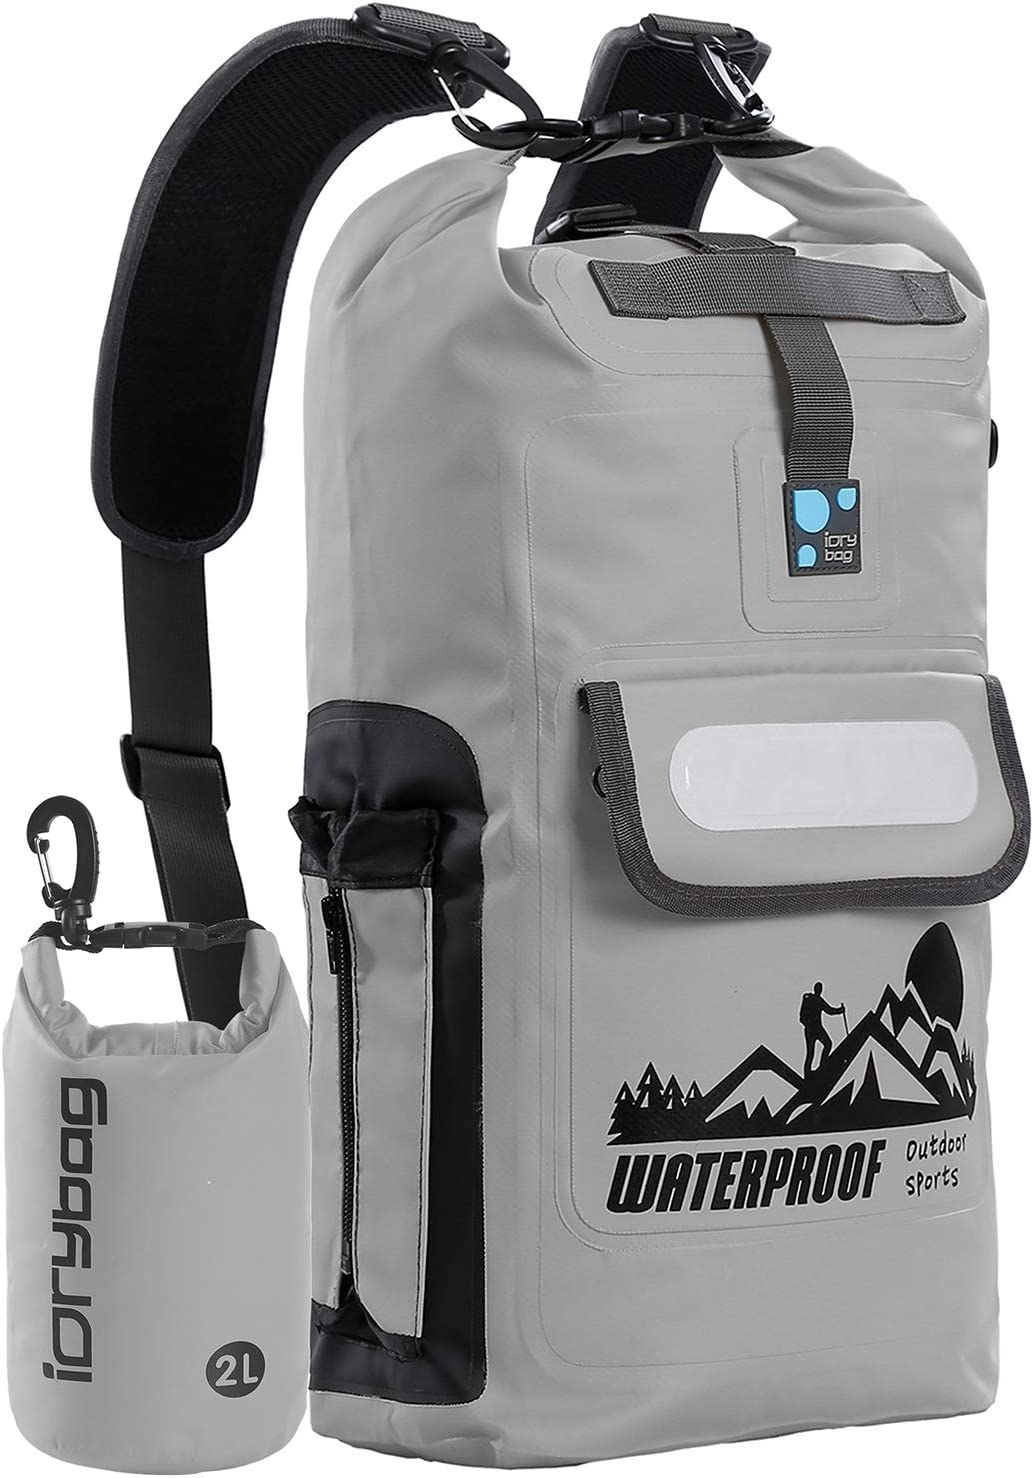 Pale gray waterproof backpack with black accents rolled up and unrolled